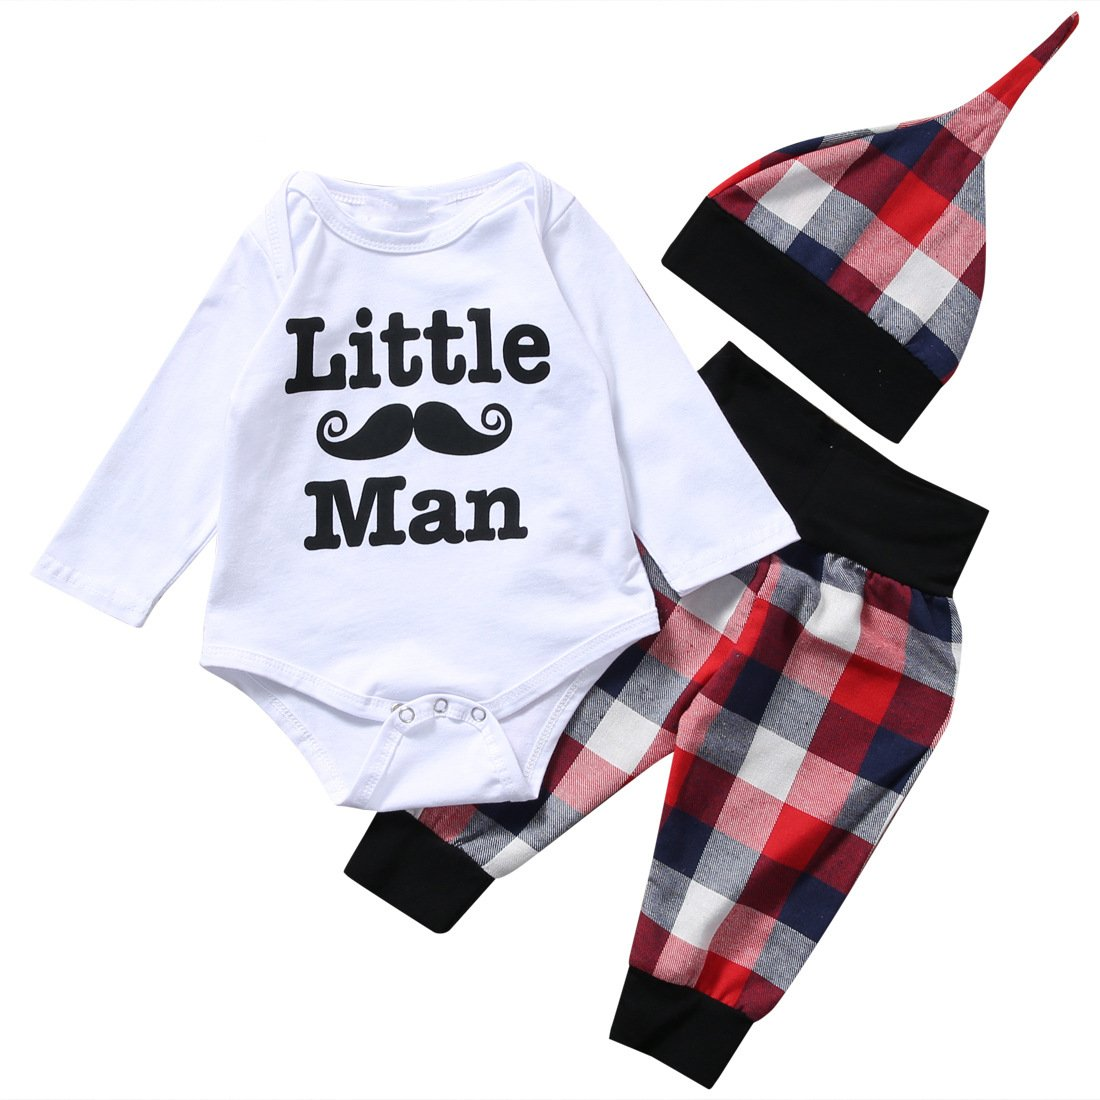 Baby Boys Little Man Print Romper+Plaid Pants+Hat Outfits Set Layette Gift Set (White, 0-6 Months)